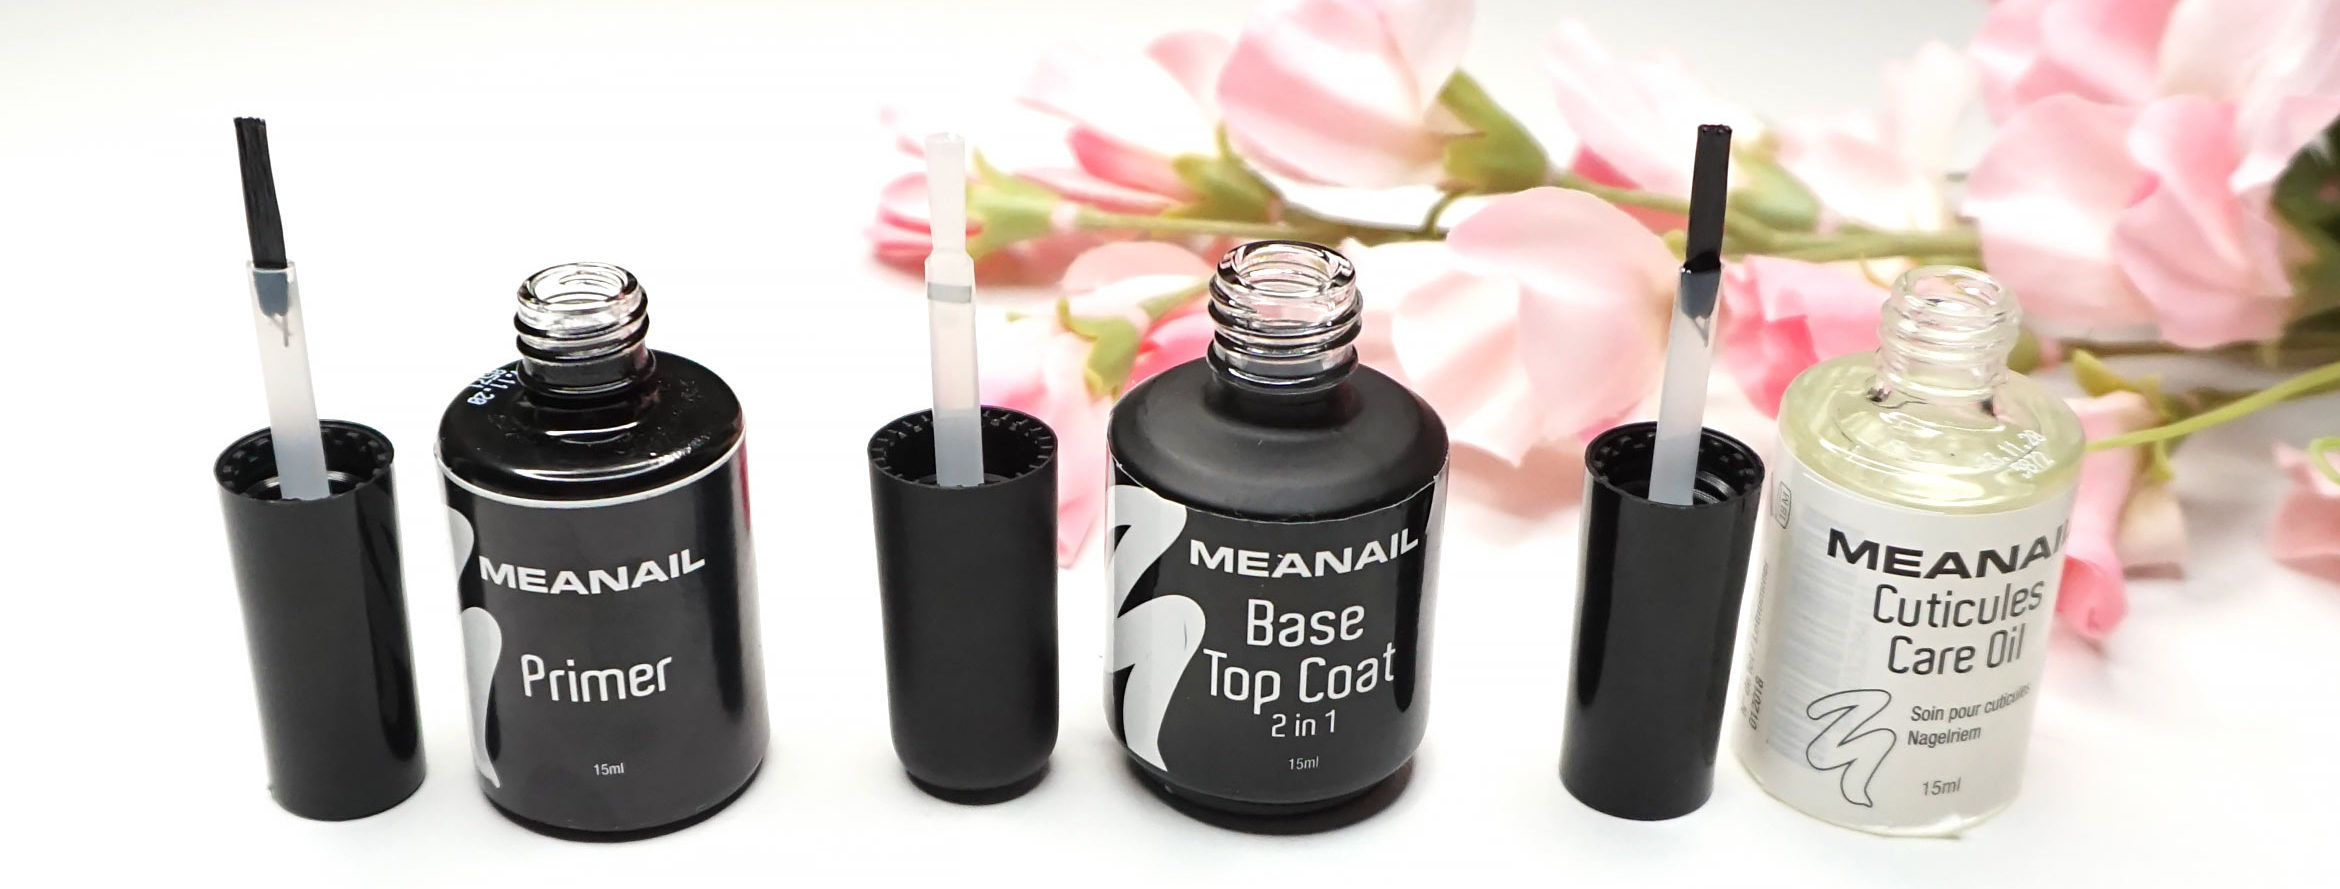 meanail-starterset-review-1